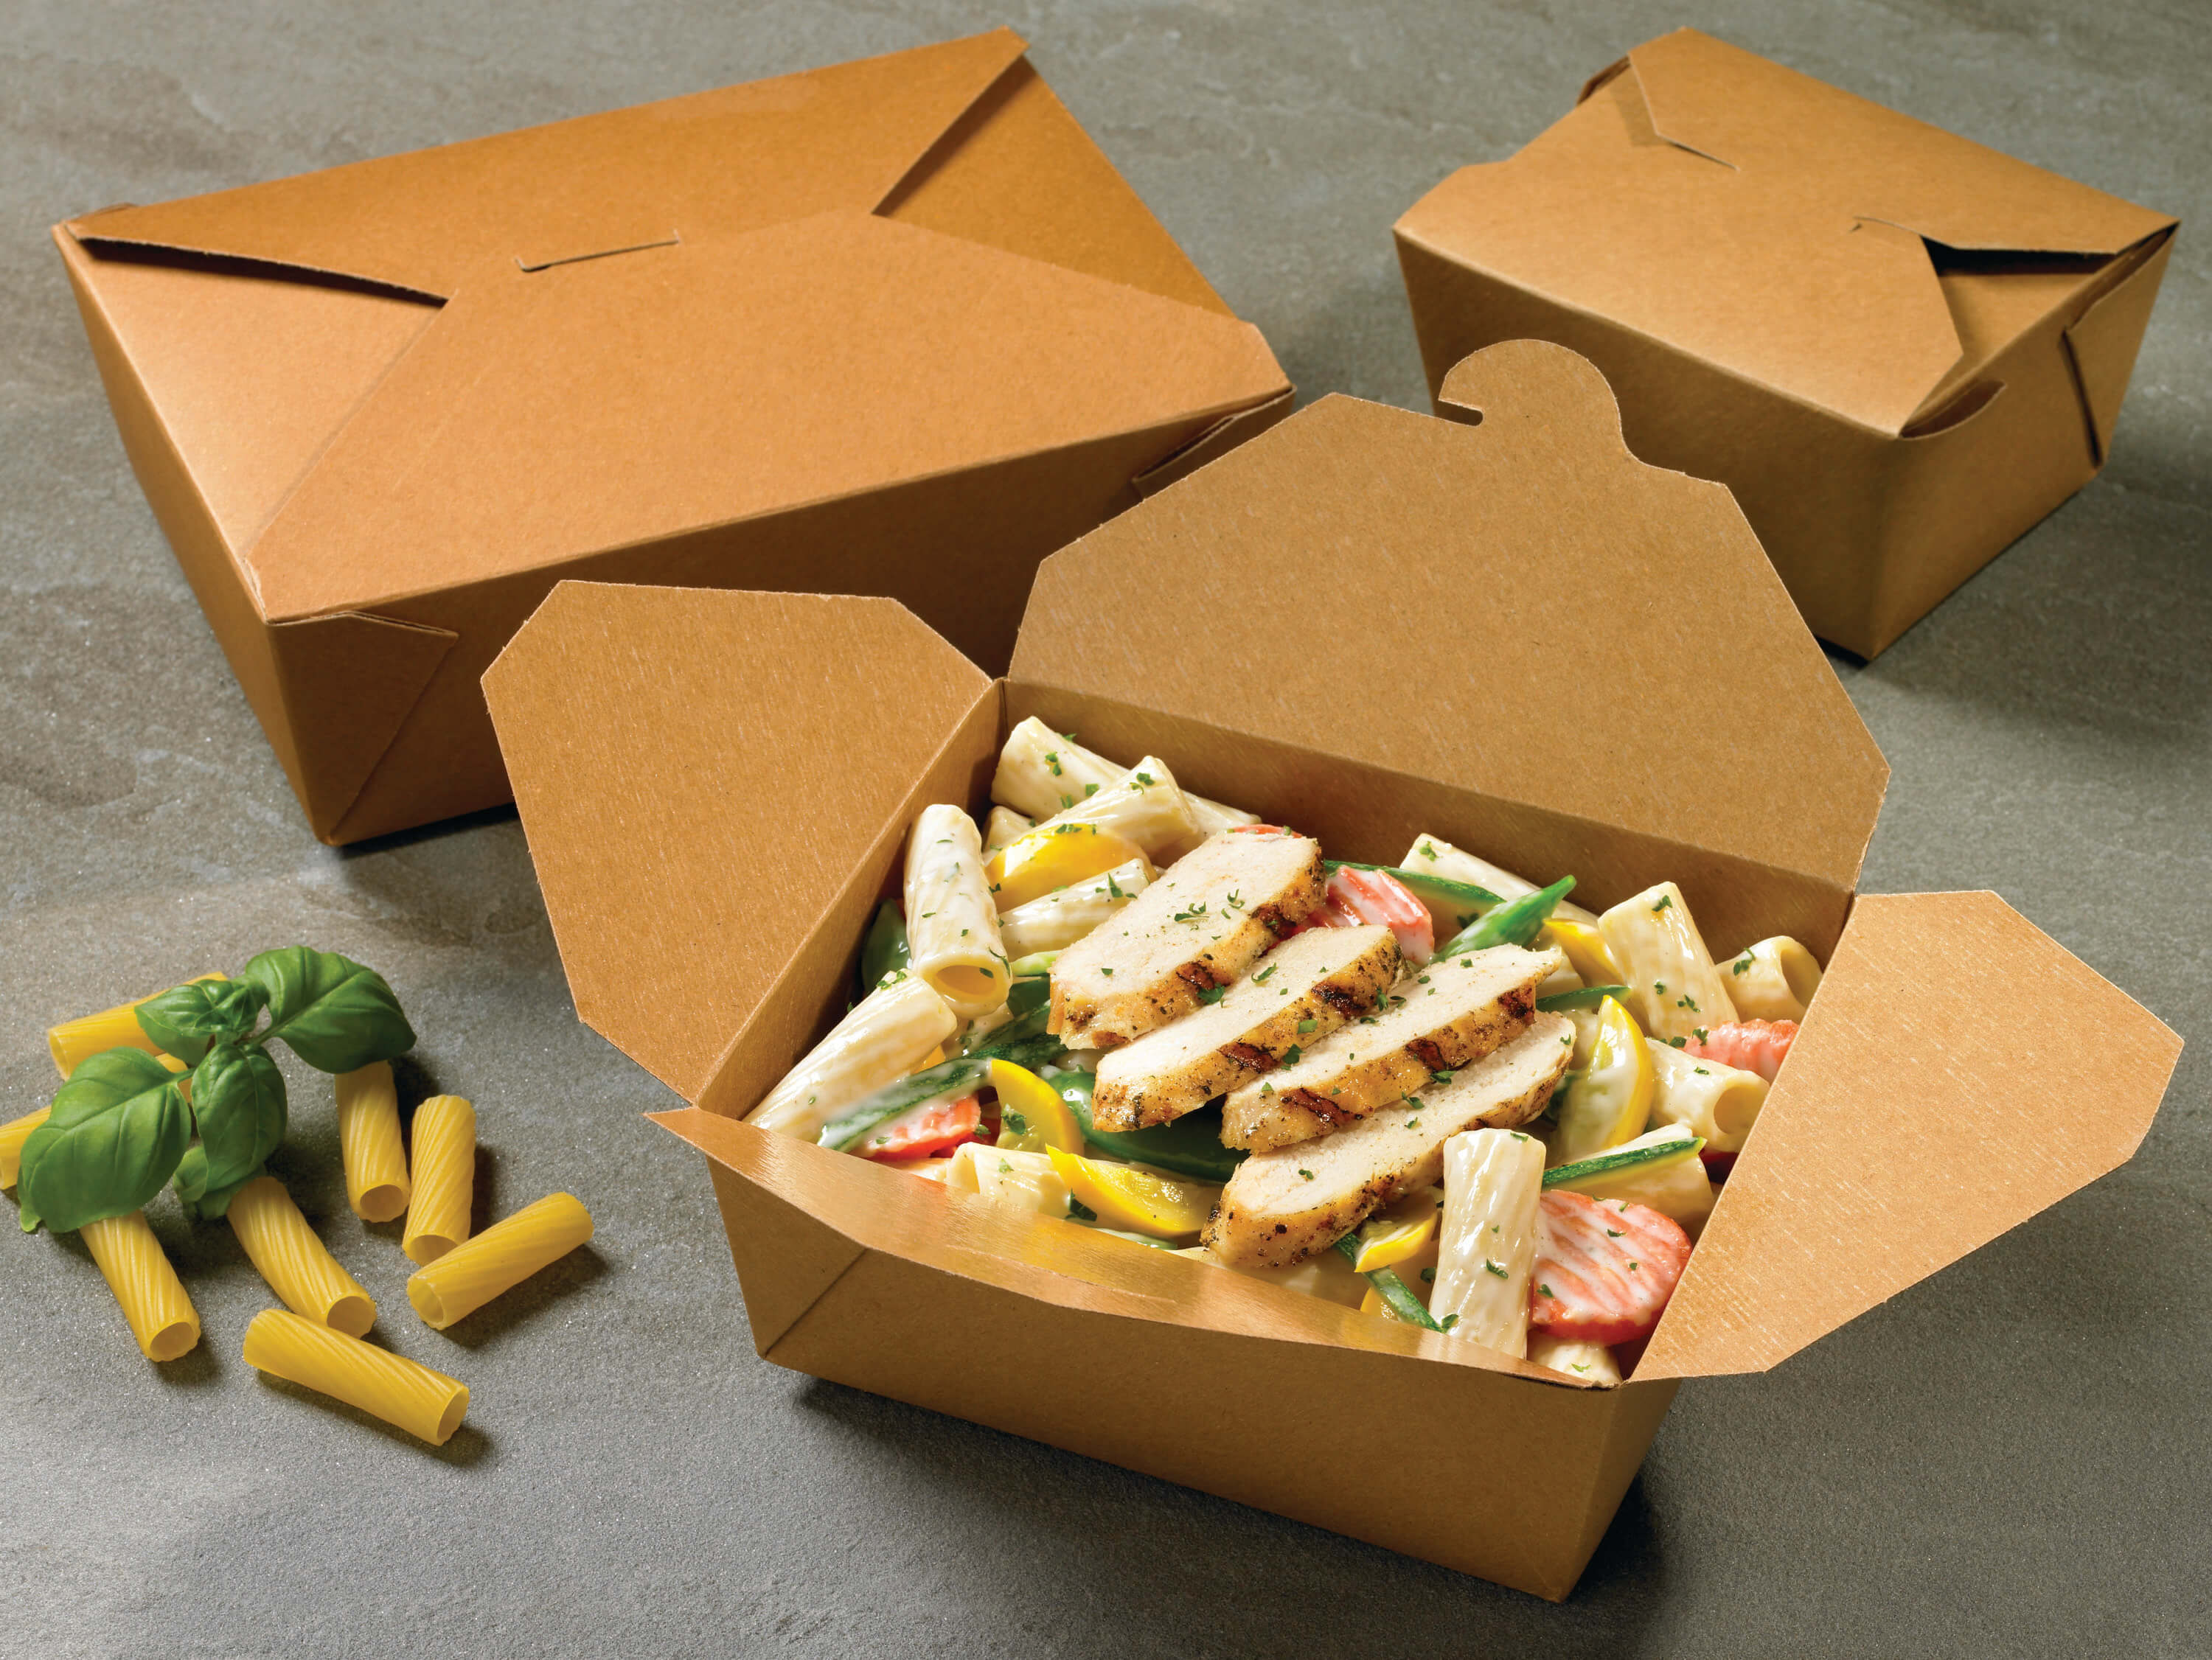 A group shot of Bio-Plus Terra II folding carton containers holding food.